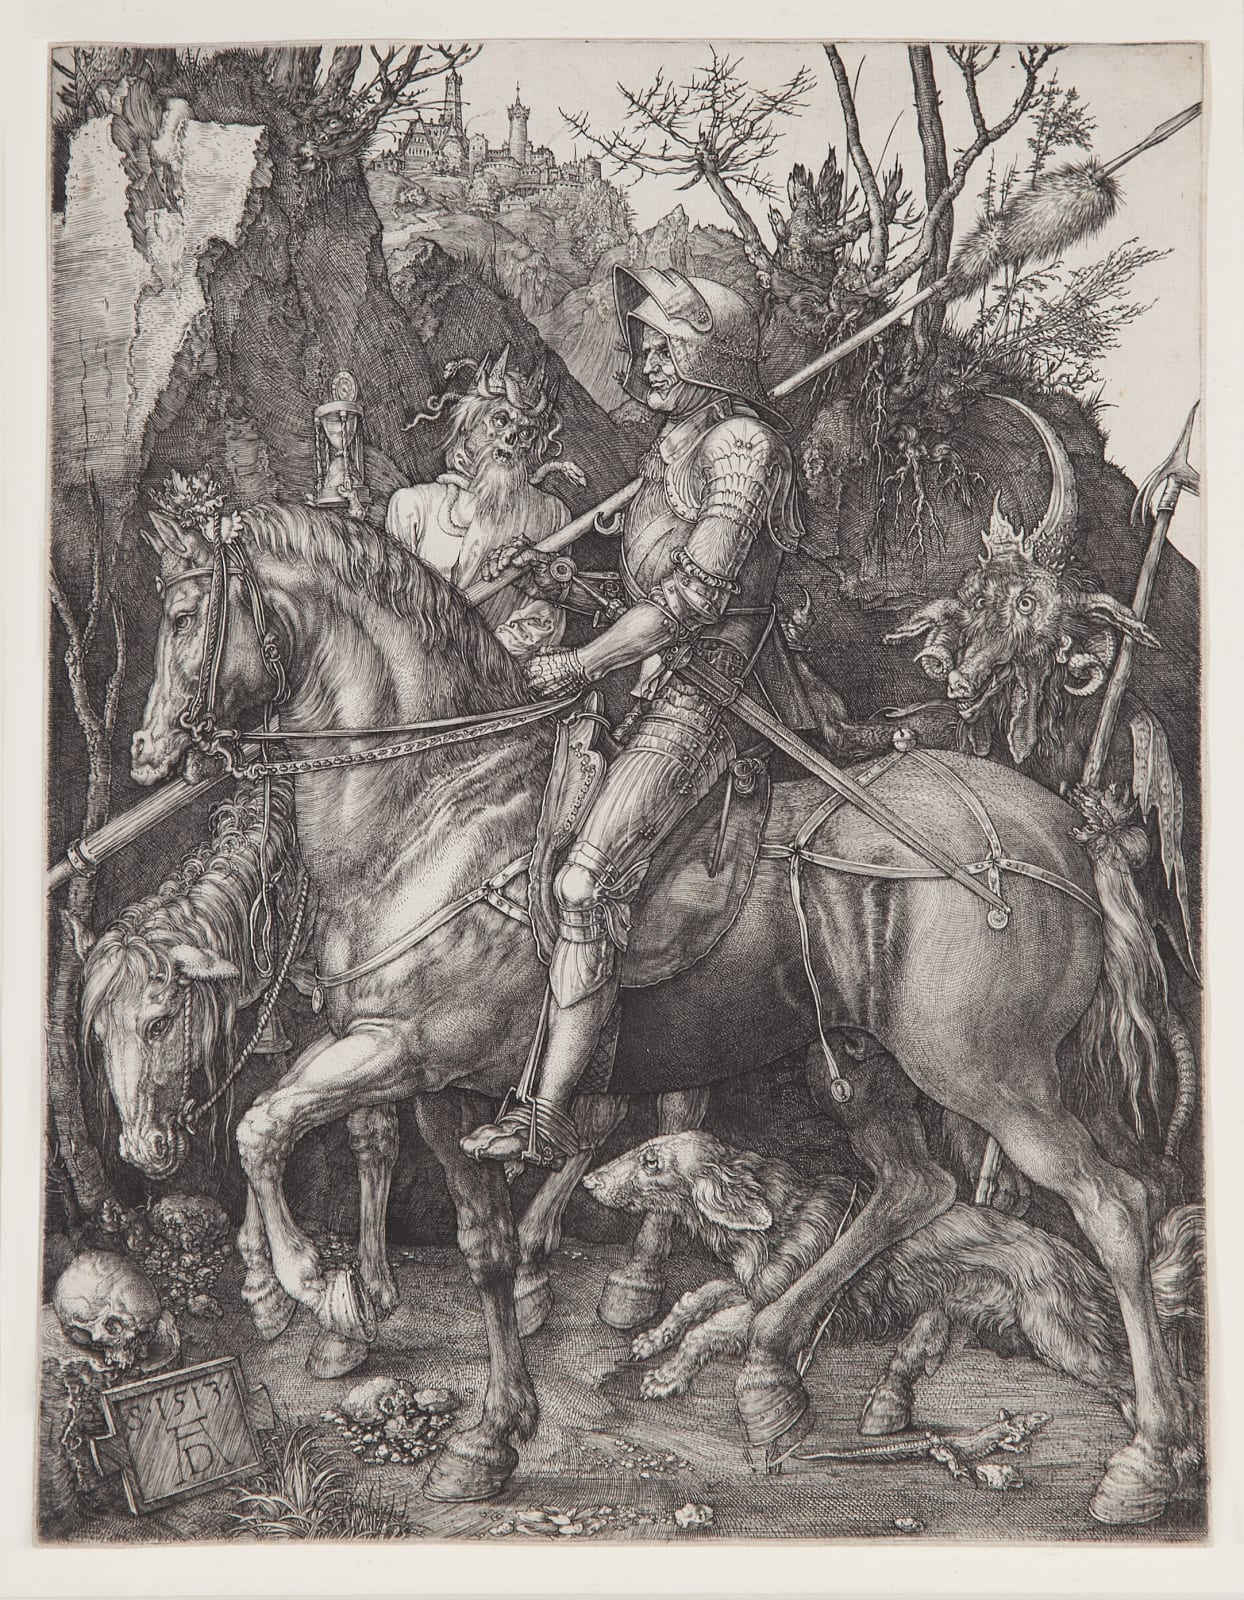 Albrecht Dürer, Knight, Death and the Devil, 1513 Engraving